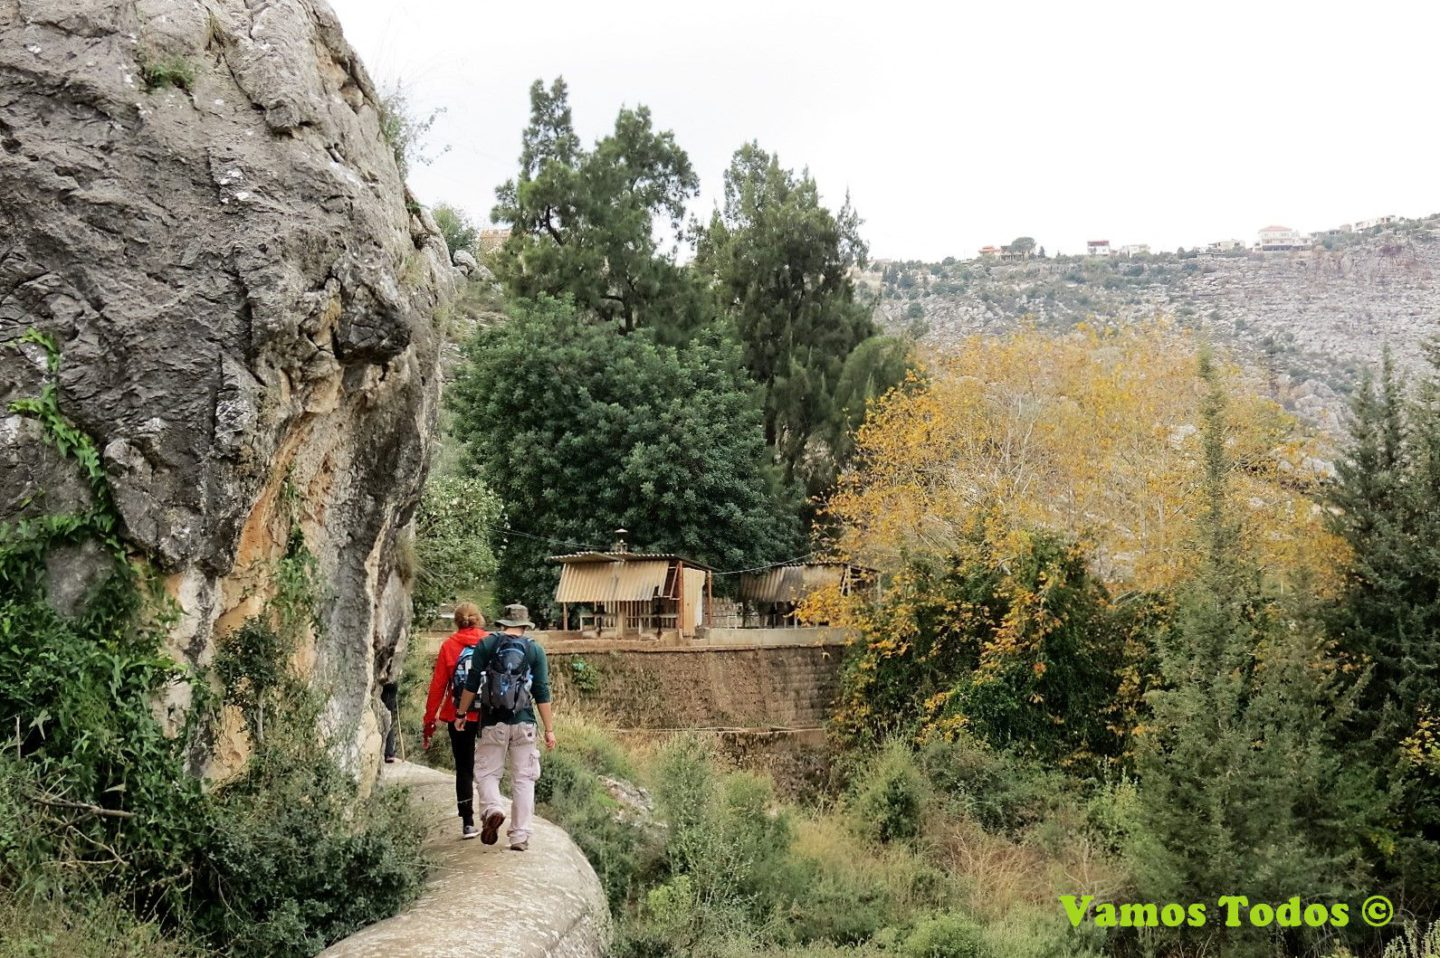 A shared nature experience in Lebanon | The Switchers